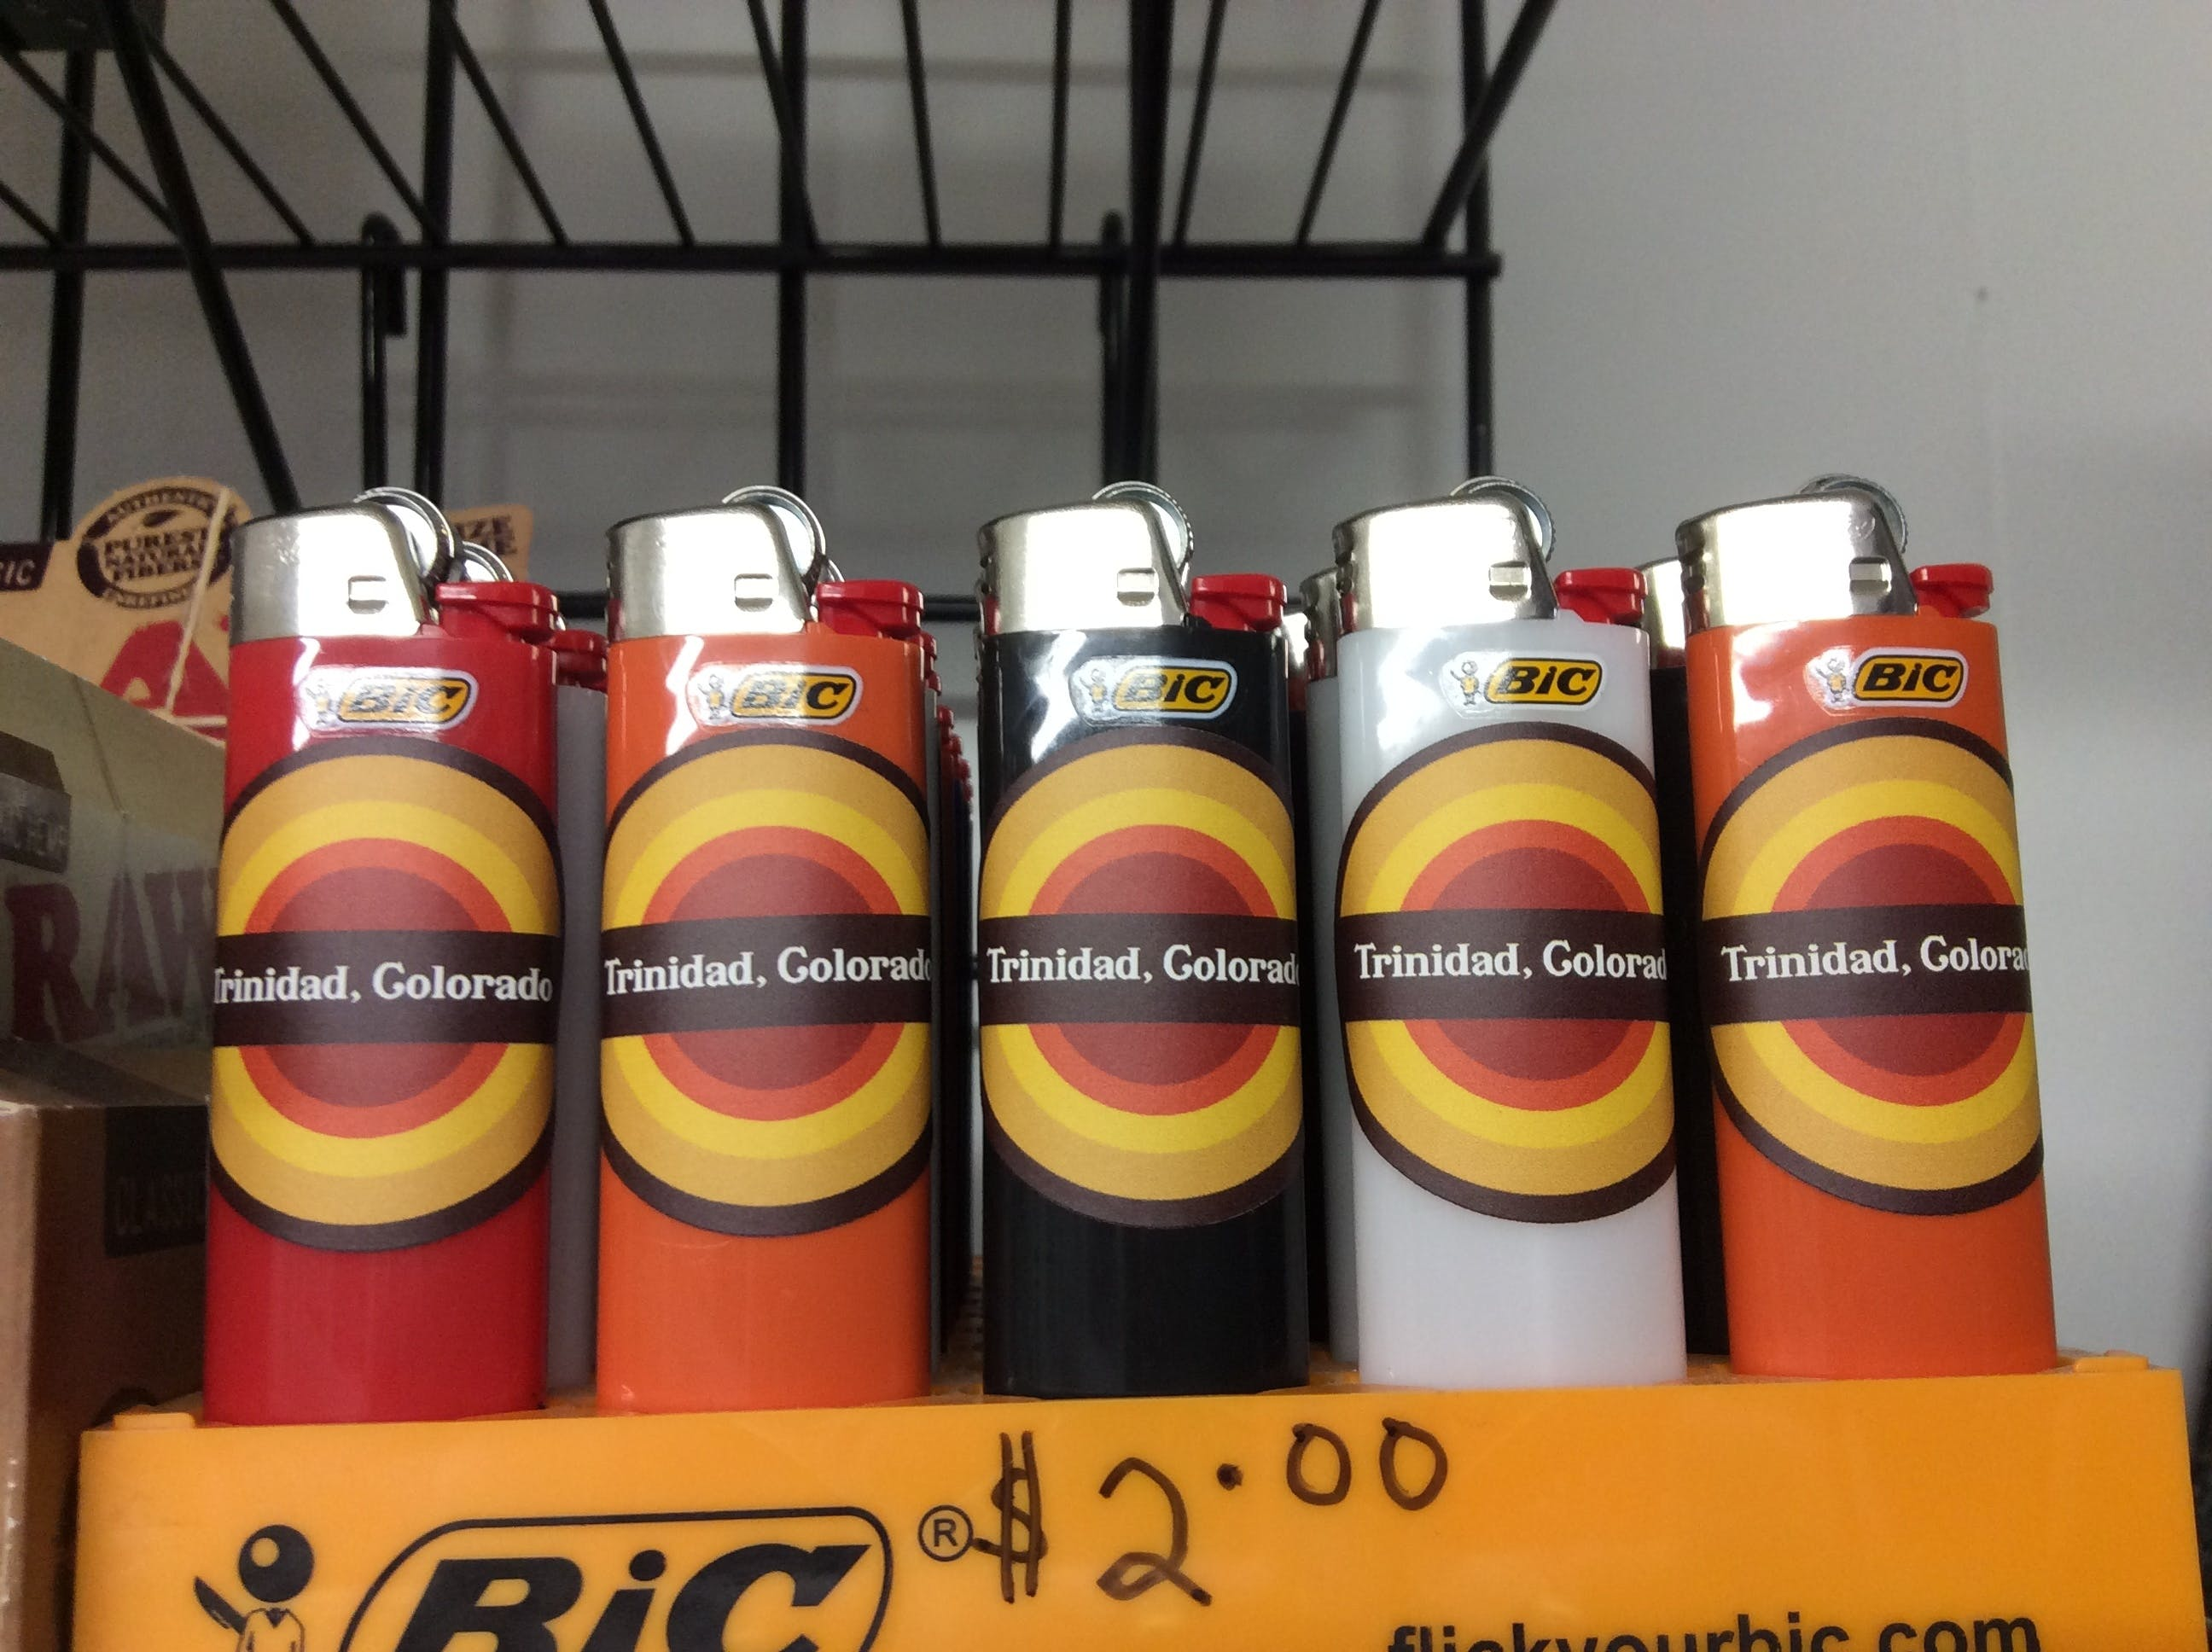 marijuana-dispensaries-thc-sacramento-in-sacramento-bic-lighter